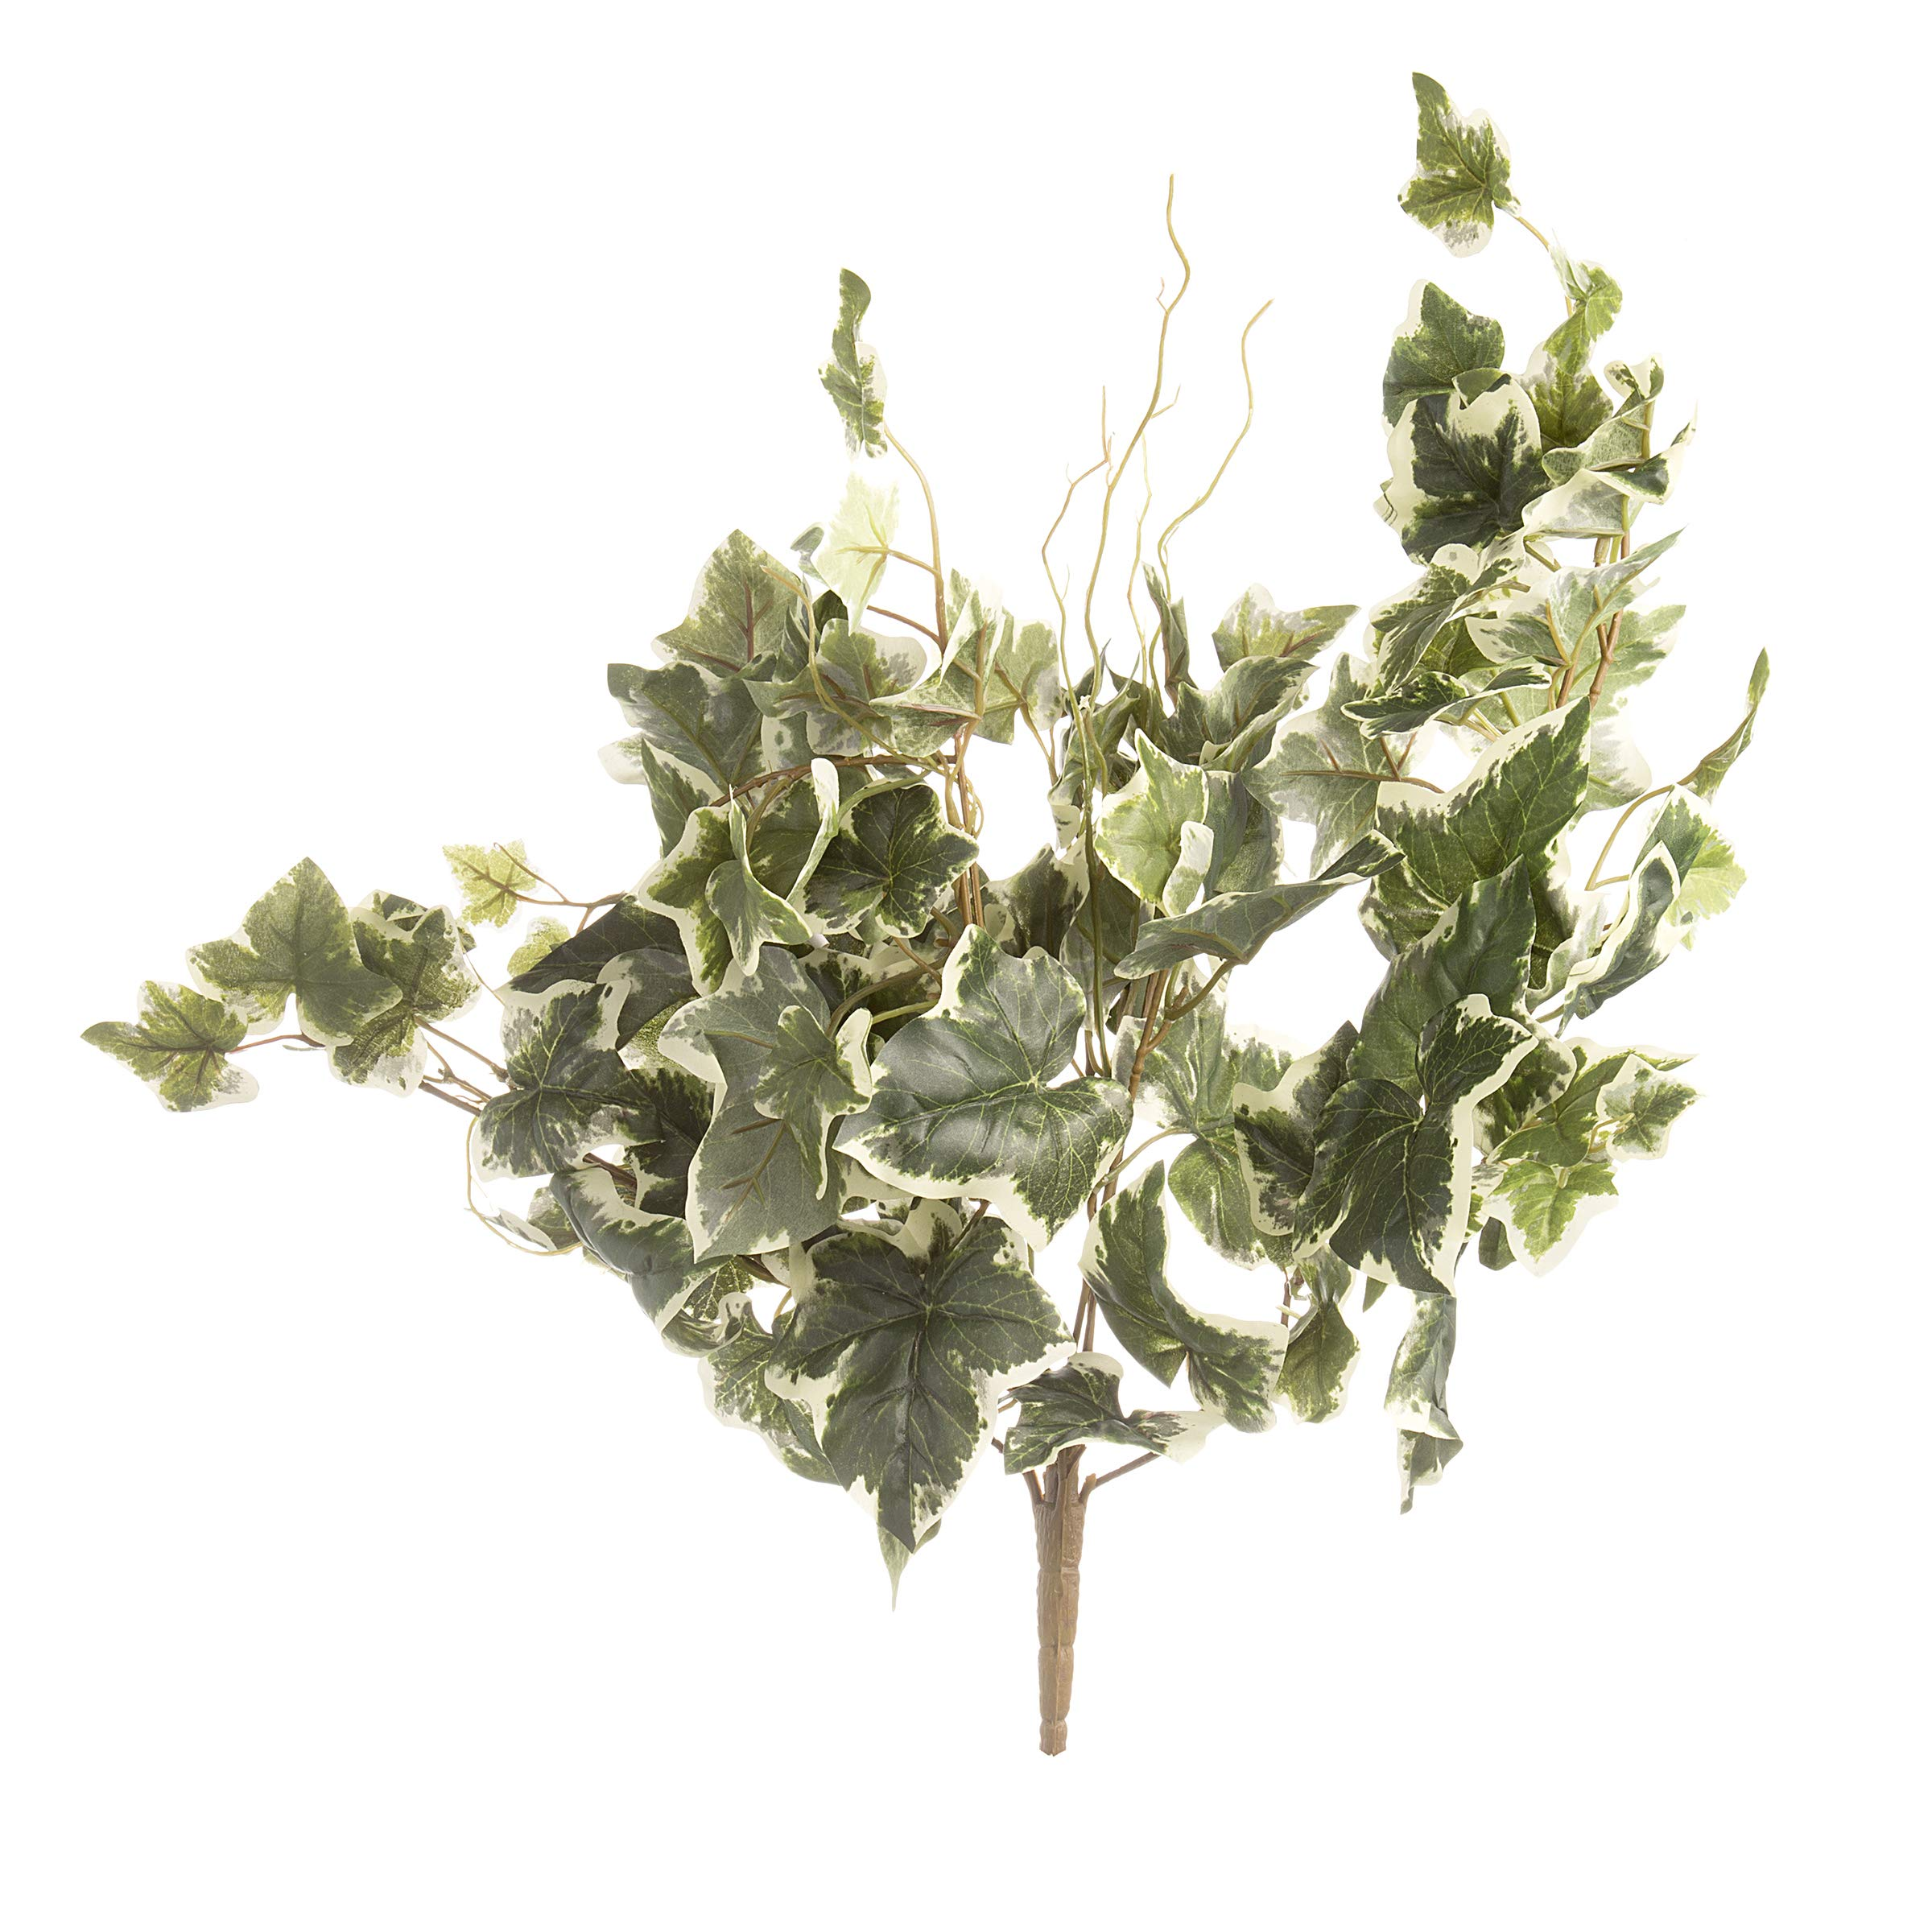 Darice 30004187 English Ivy Bush: White/Green, 26 inches, 5 Tips Artificial Plant